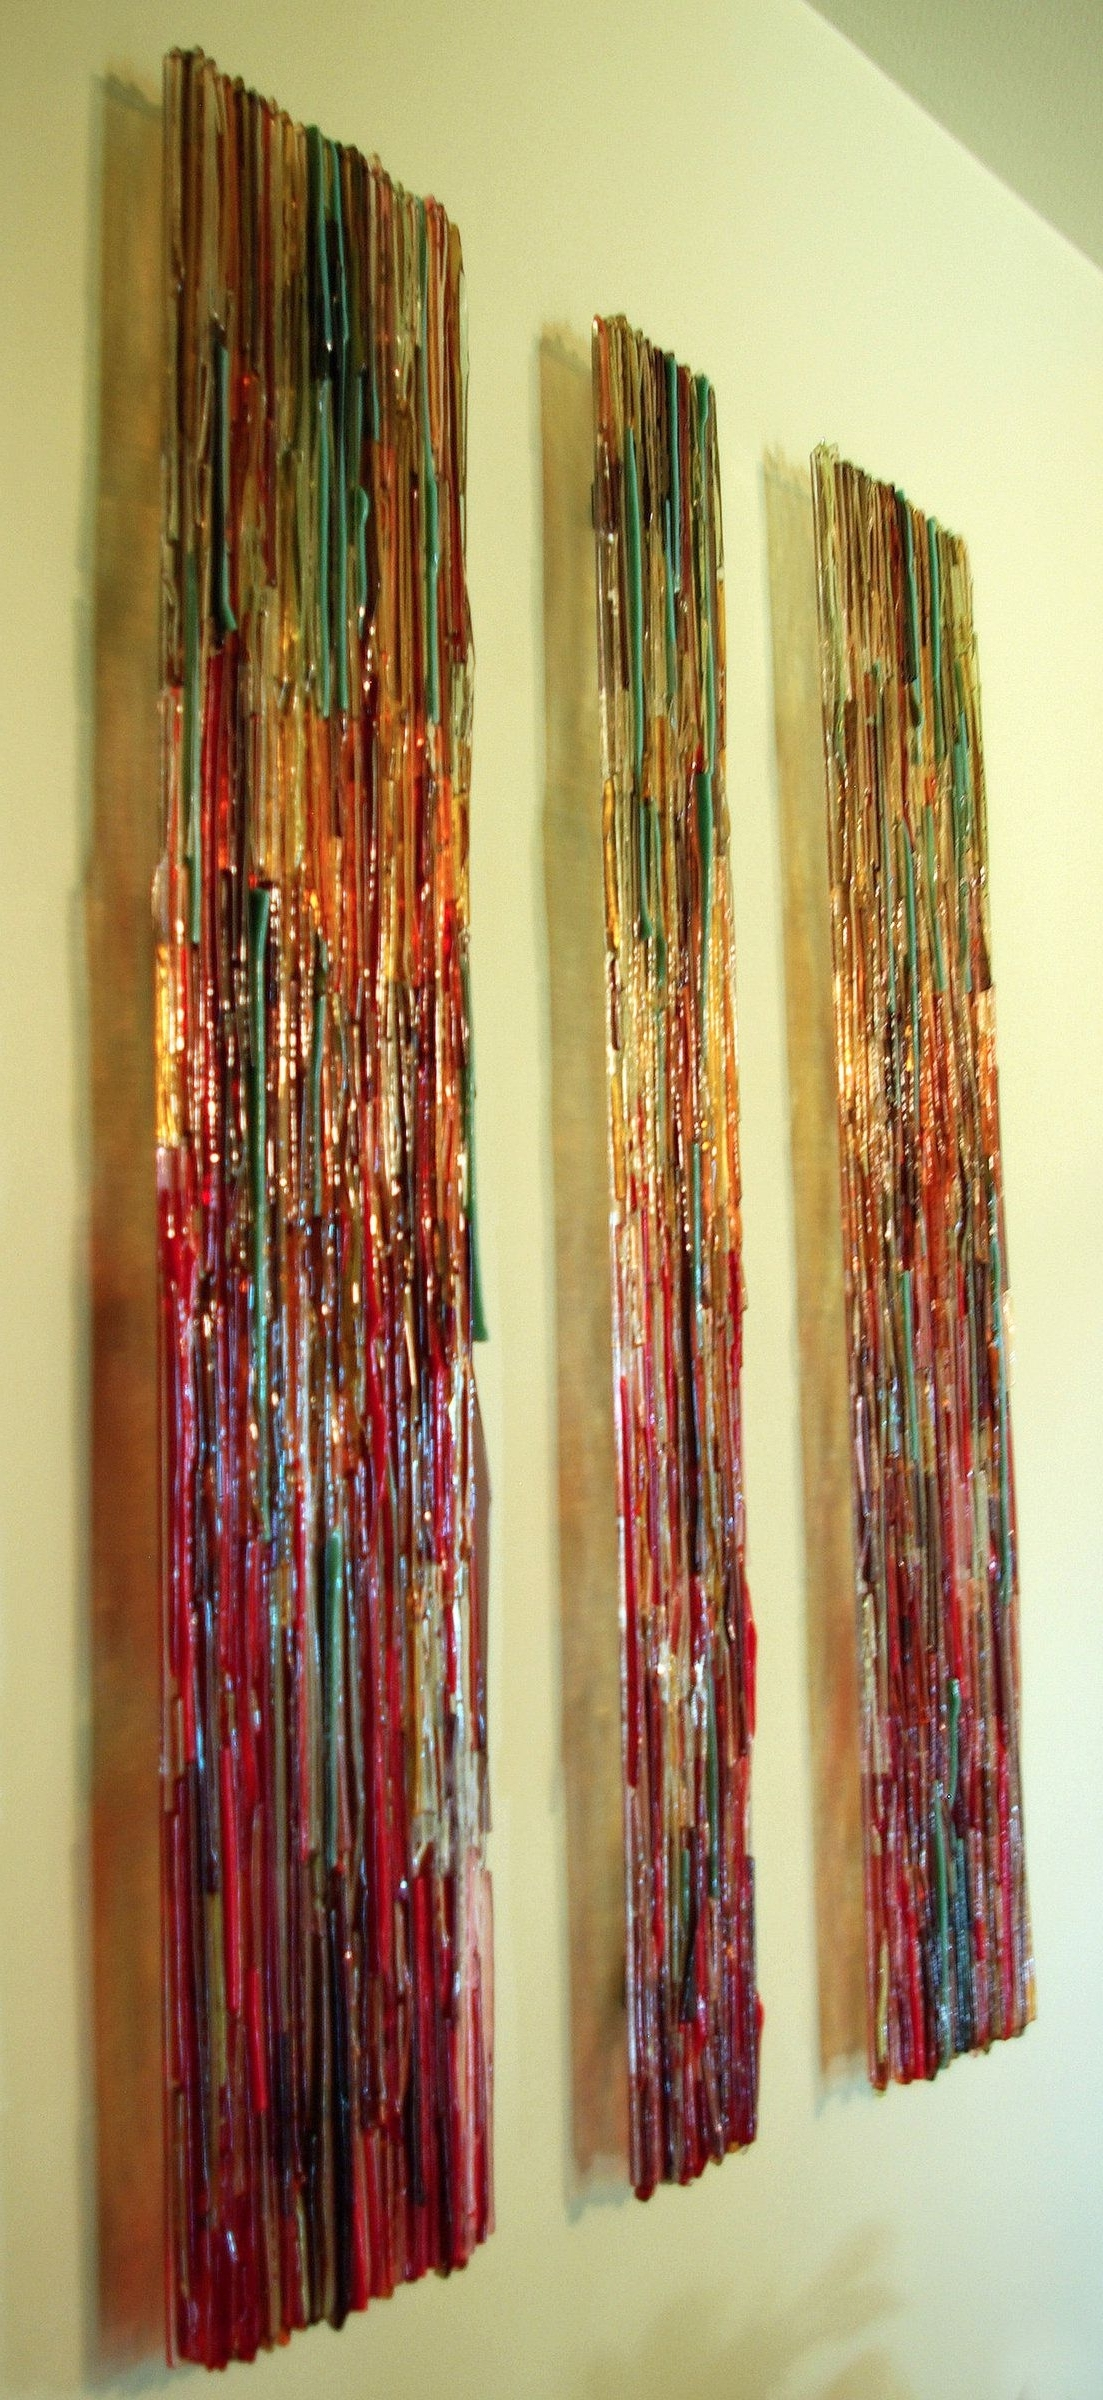 View Photos of Fused Glass Wall Art Panels (Showing 2 of 15 Photos)